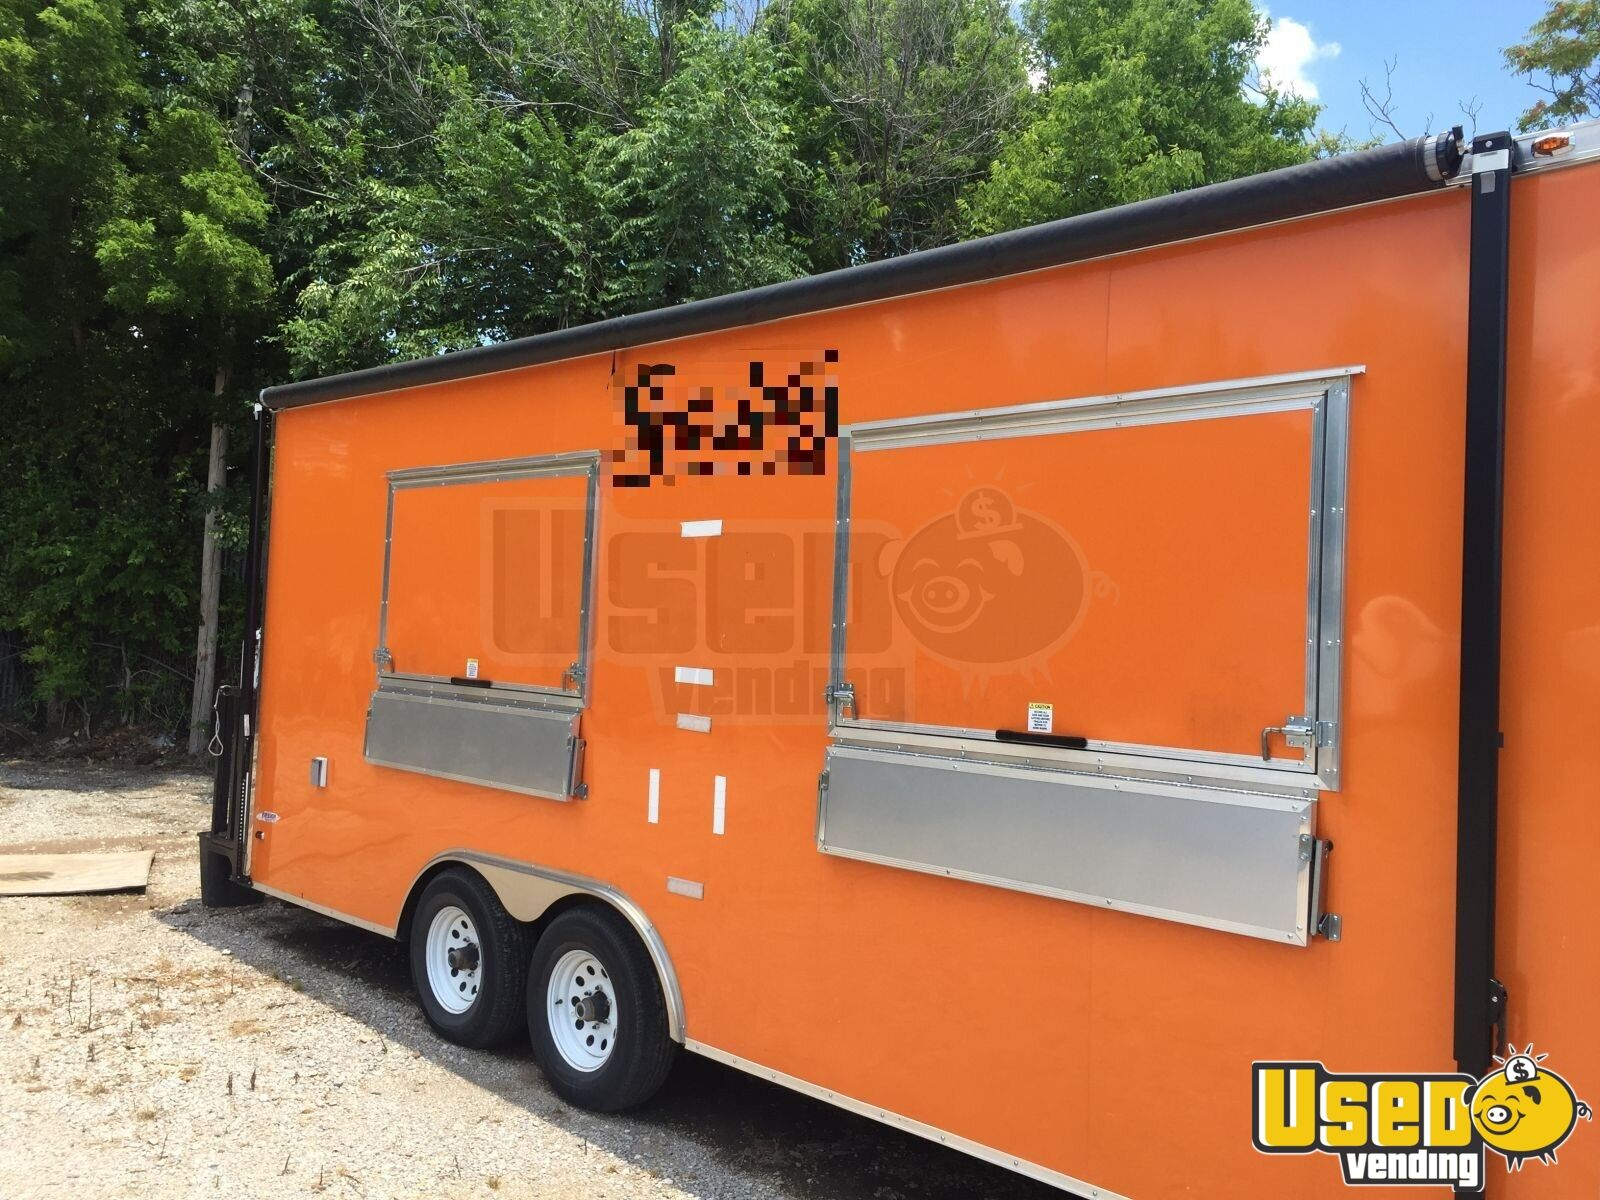 2017 Food Concession Trailer Kitchen Food Trailer Air Conditioning Oklahoma for Sale - 2